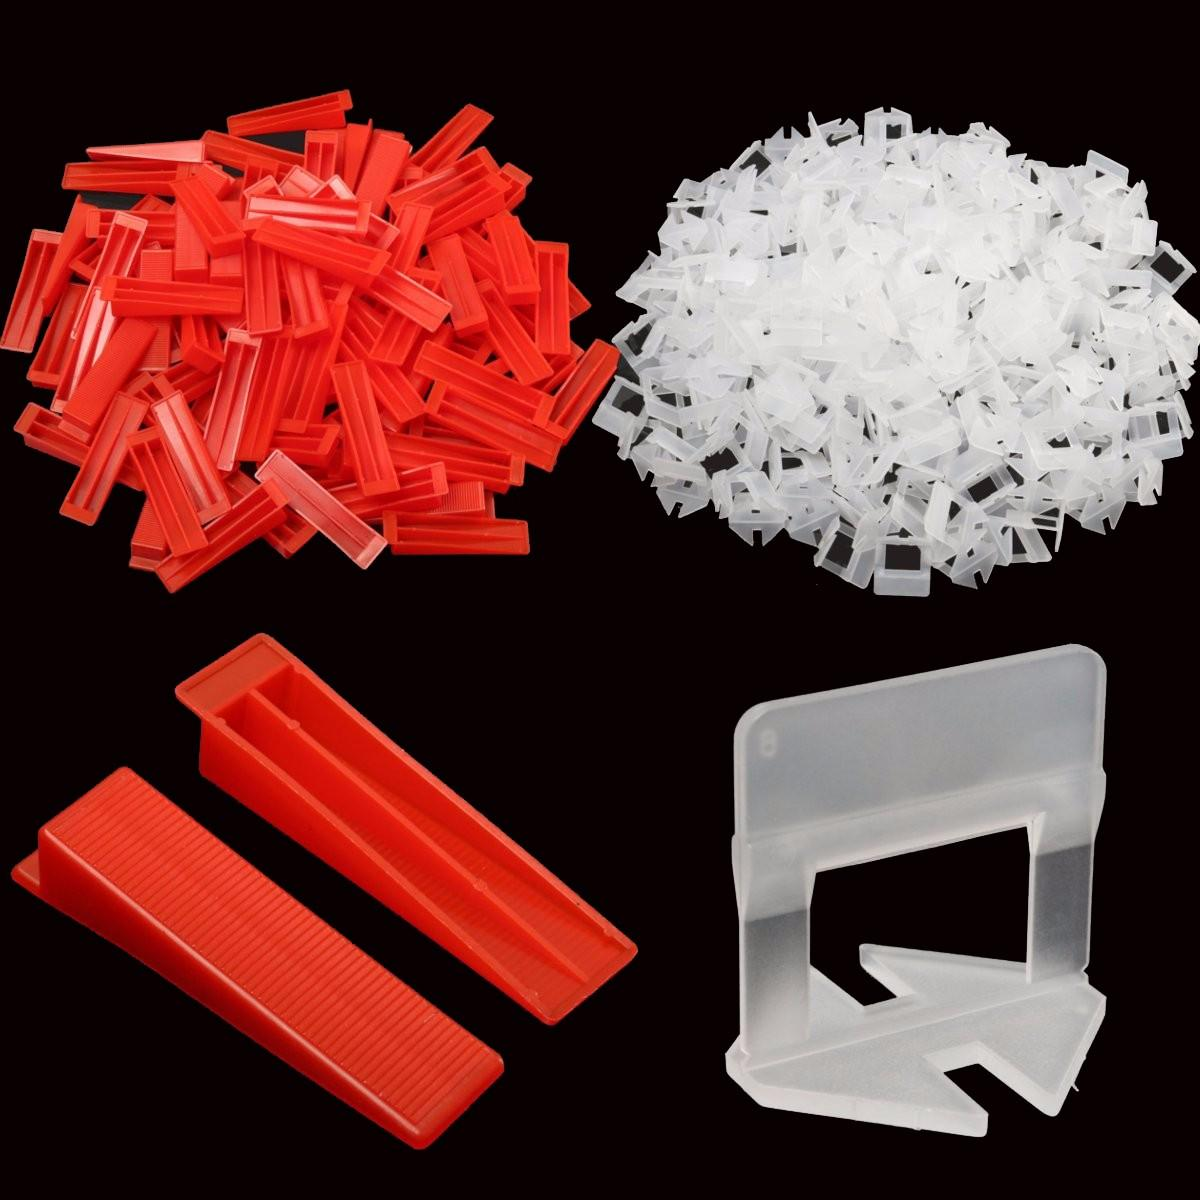 600 Tile Leveling System Wedges And Clips Spacer Plastic Tiling Tools Us 53 55